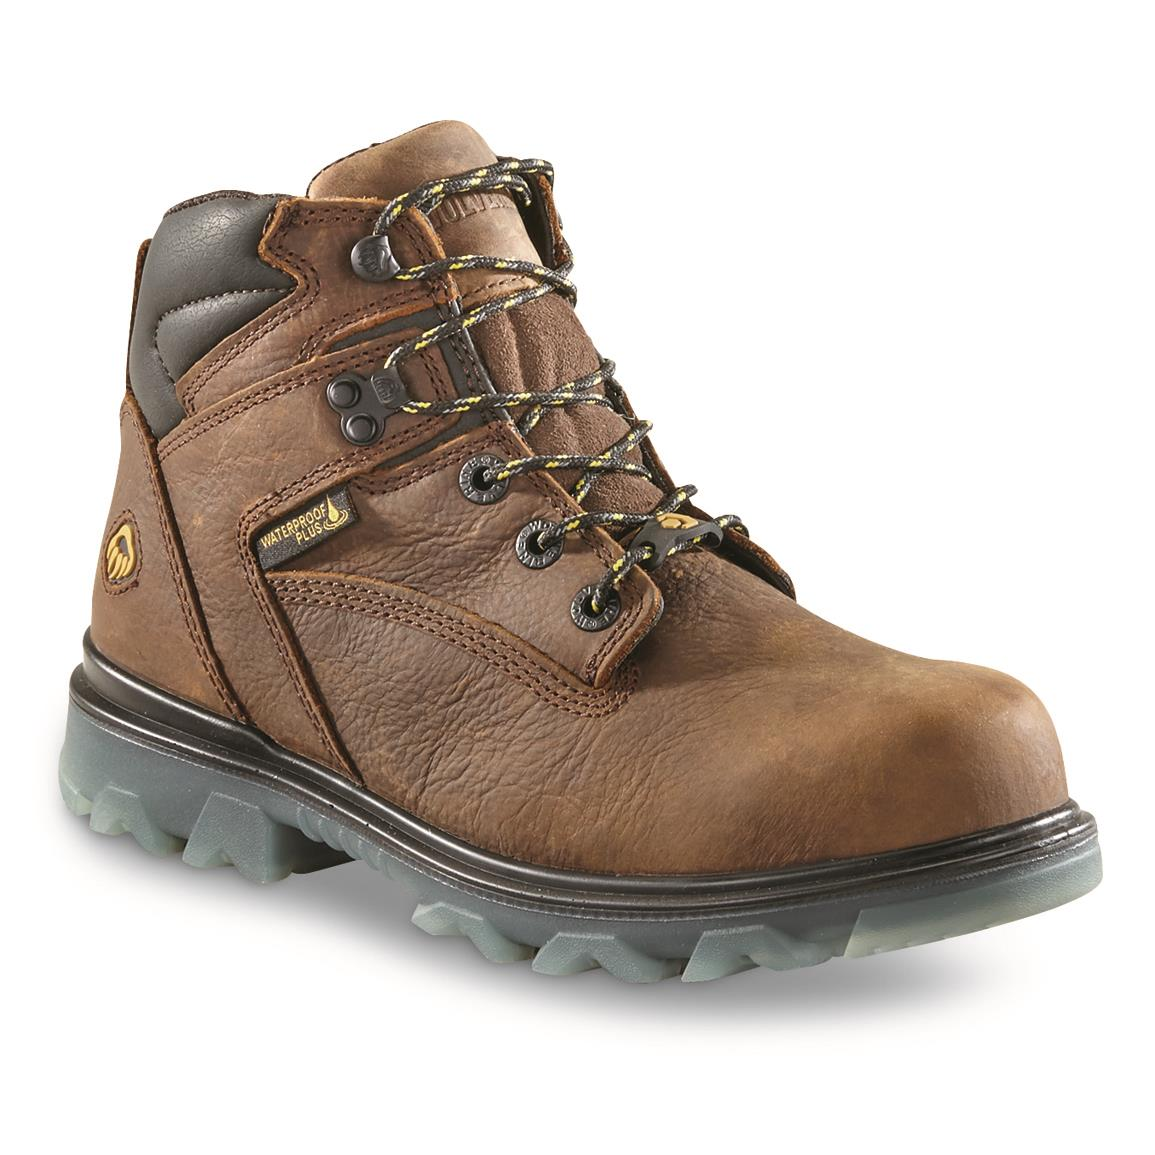 Wolverine Women's I-90 EPX Waterproof Work Boots, Sudan Brown